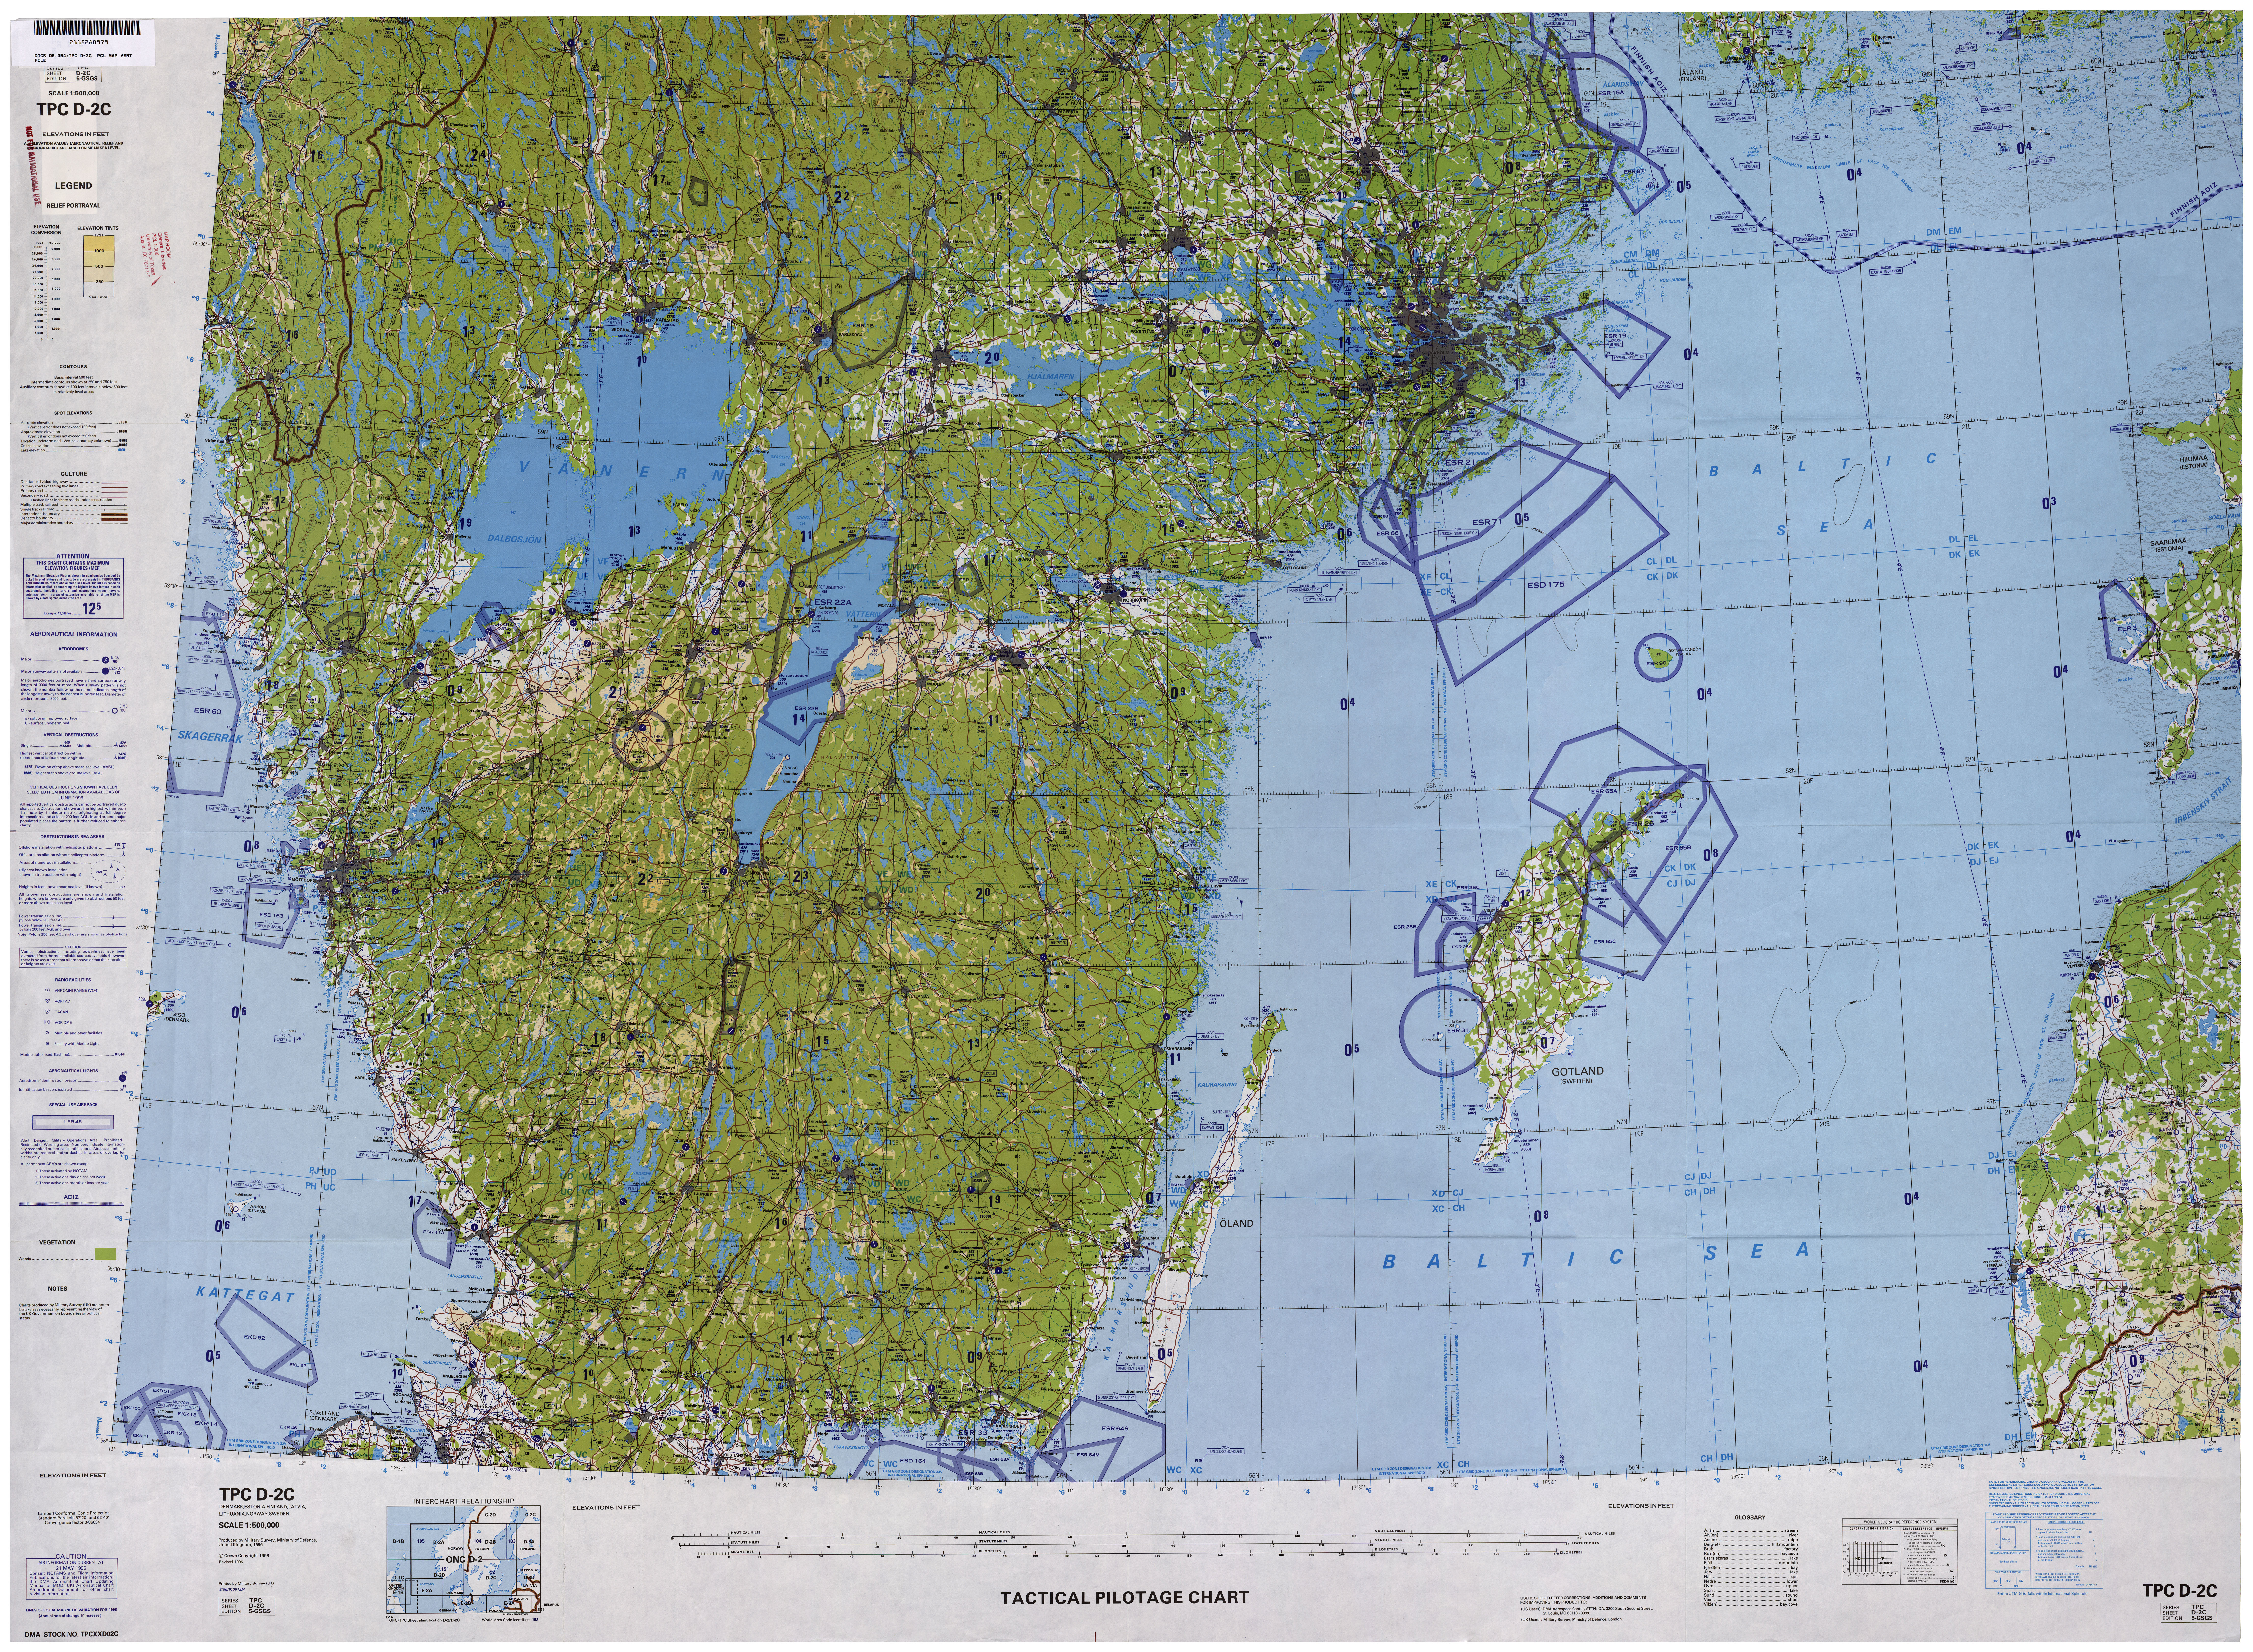 Tactical Pilotage Charts PerryCastañeda Map Collection UT - Sweden usa map